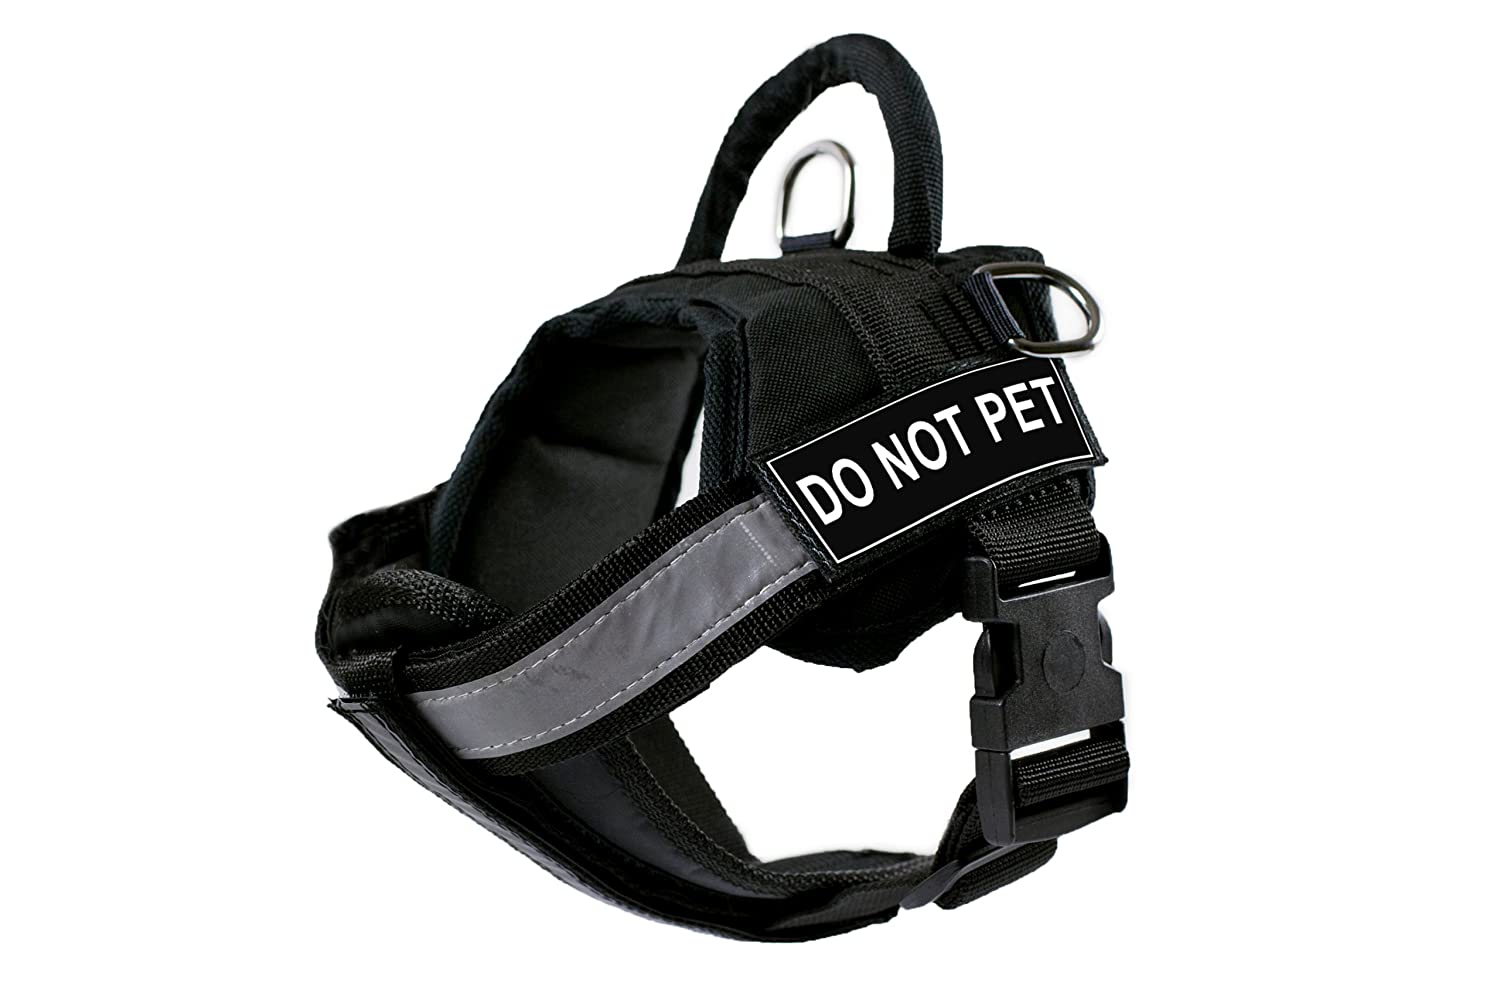 DT Works Harness with Padded Reflective Chest Straps, Do Not Pet, Black, X-Small, Fits Girth Size  21-Inch to 26-Inch